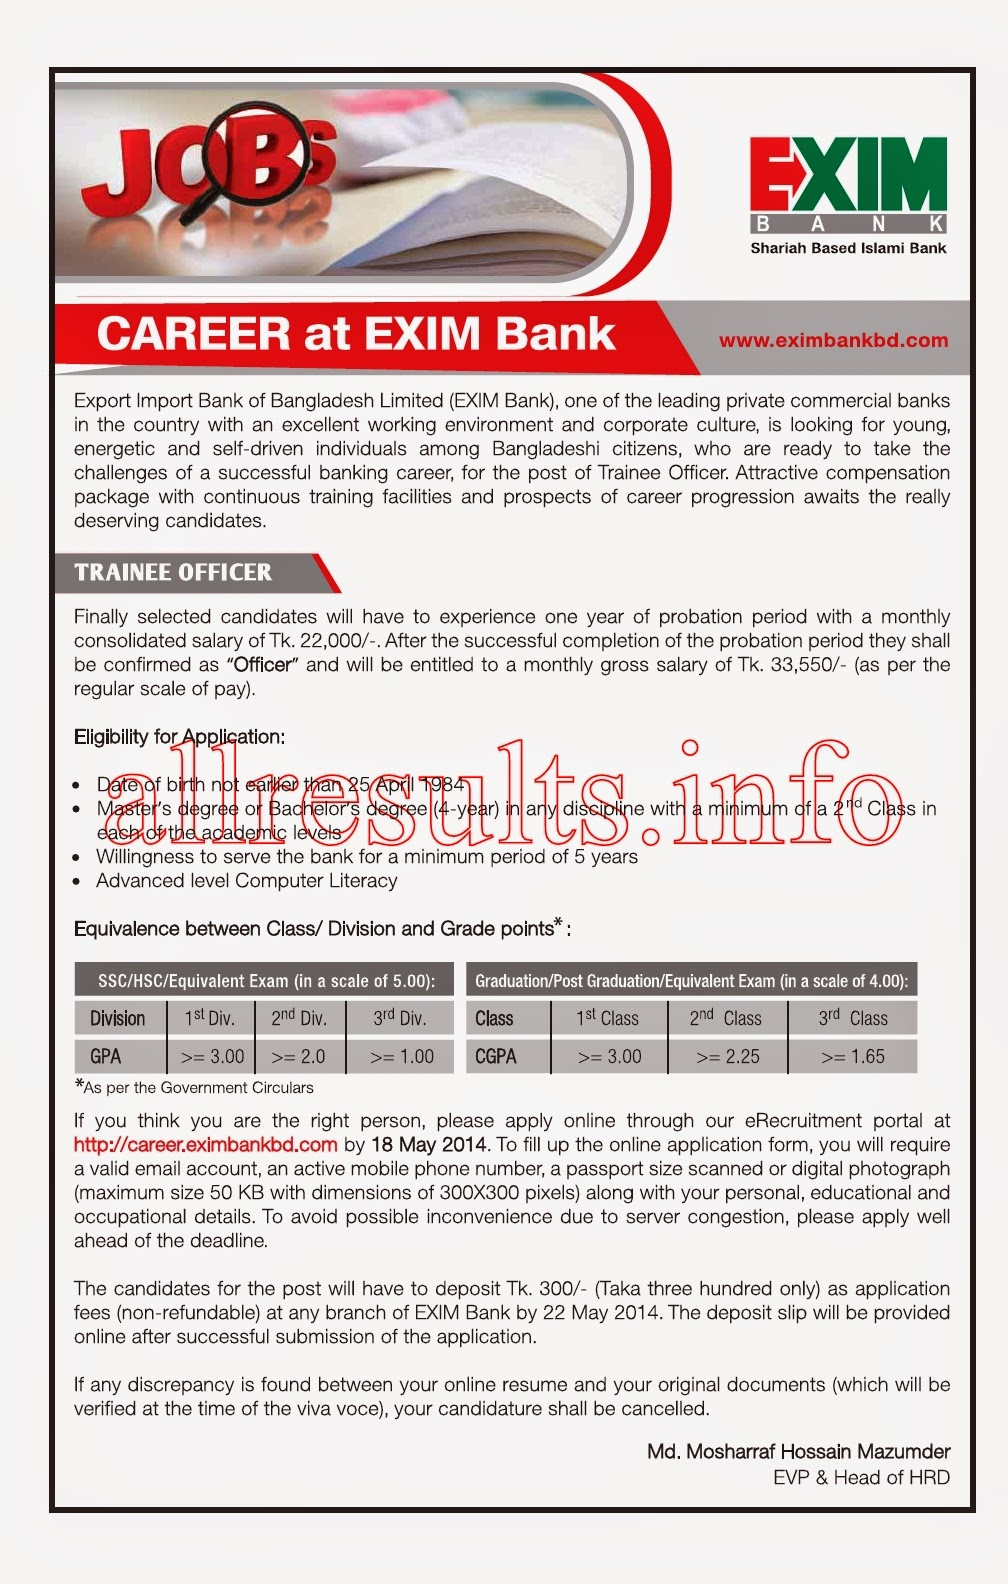 questionnaire of recruitment and selection process of islami bank bangladesh ltd Social islami bank bangladesh limited (sibl) is a top commercial private bank in bangladesh recently the social islami bank published new job circular for people it's post position name assistant officer (cash) .